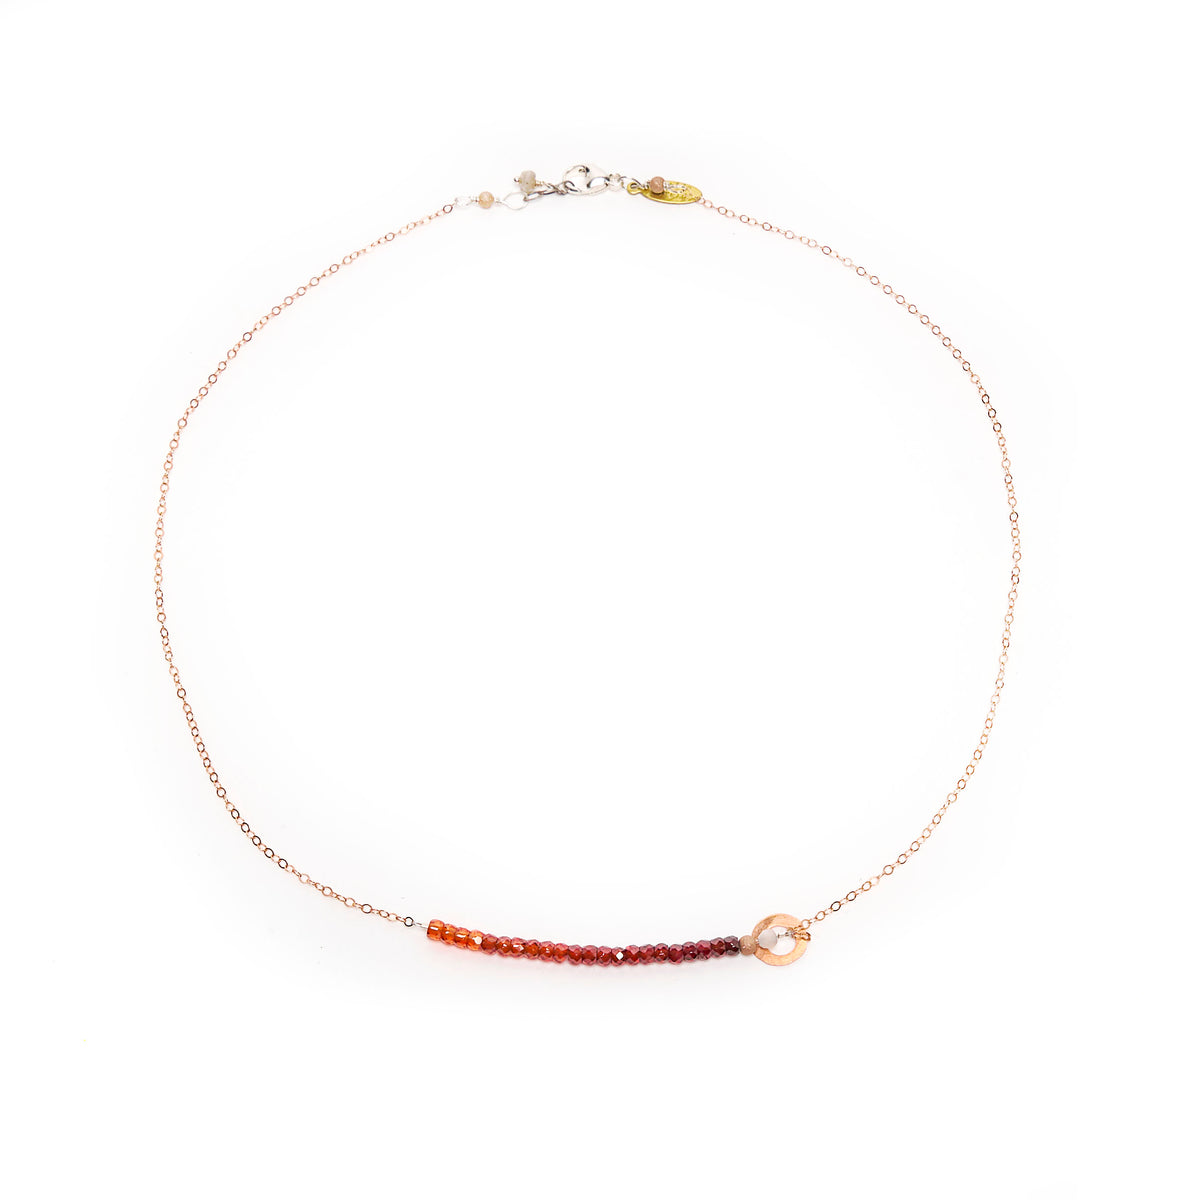 O my Darlin' Carnelian necklace